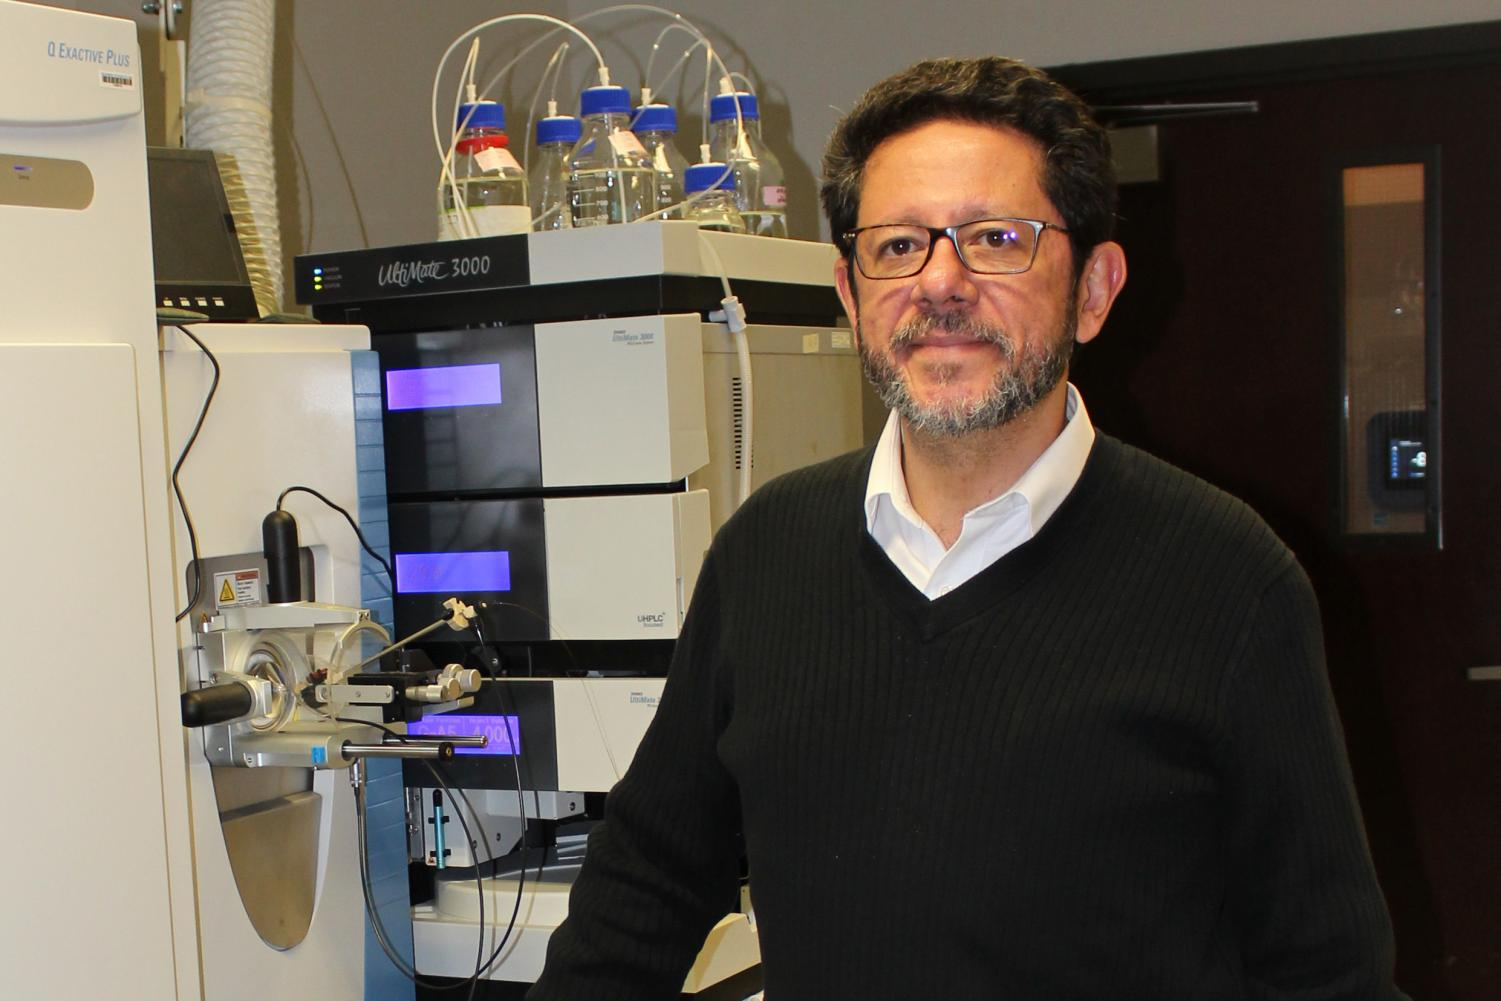 UTEP Professor Igor C. Almeida, Ph.D., is leading an almost 30-year research project that aims to discover a better treatment, as well as a vaccine, for Chagas disease.